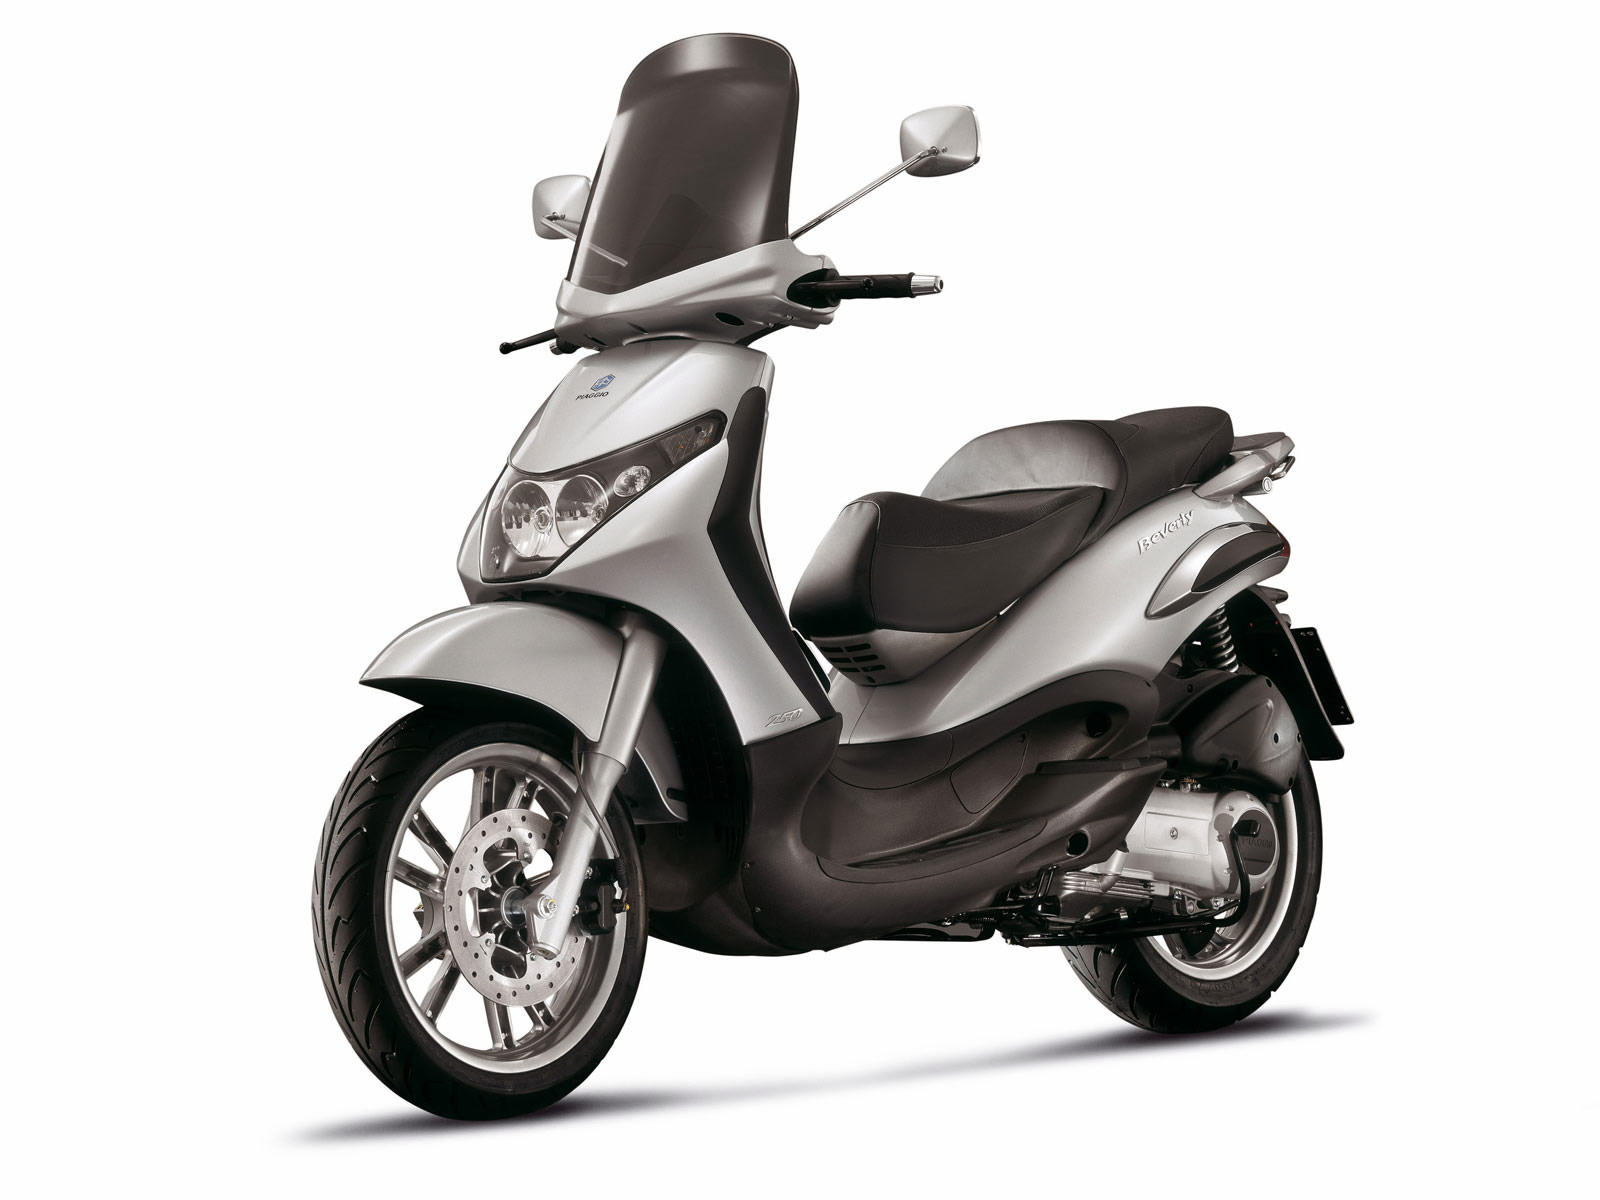 piaggio scooter pictures 2007 beverly 250 specifications. Black Bedroom Furniture Sets. Home Design Ideas